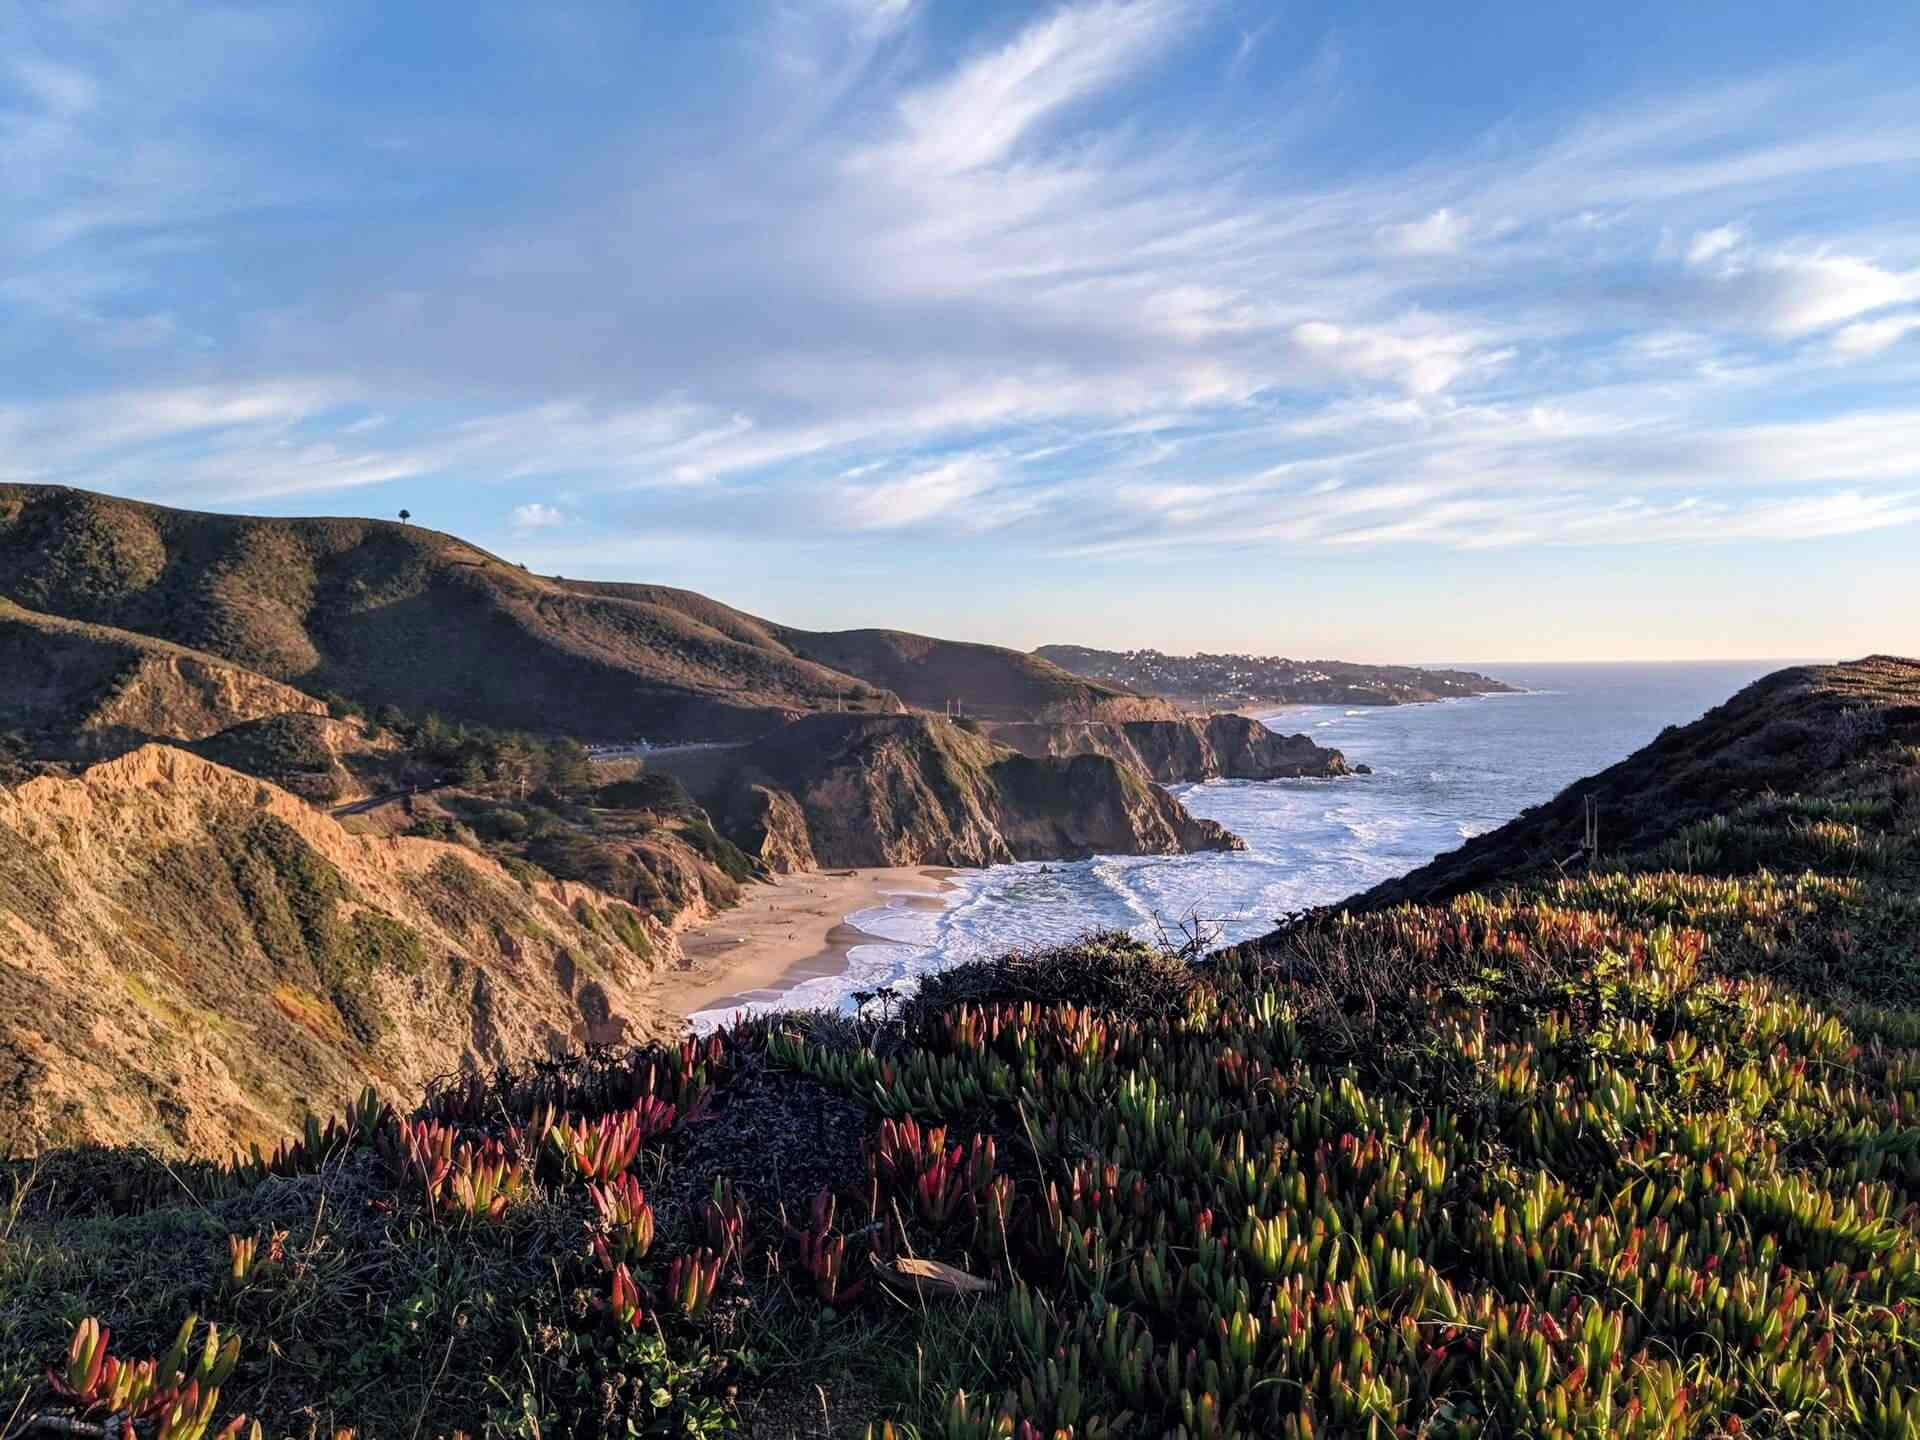 Best RV Camping around Half Moon Bay: Campgrounds, Amenities and Pricing